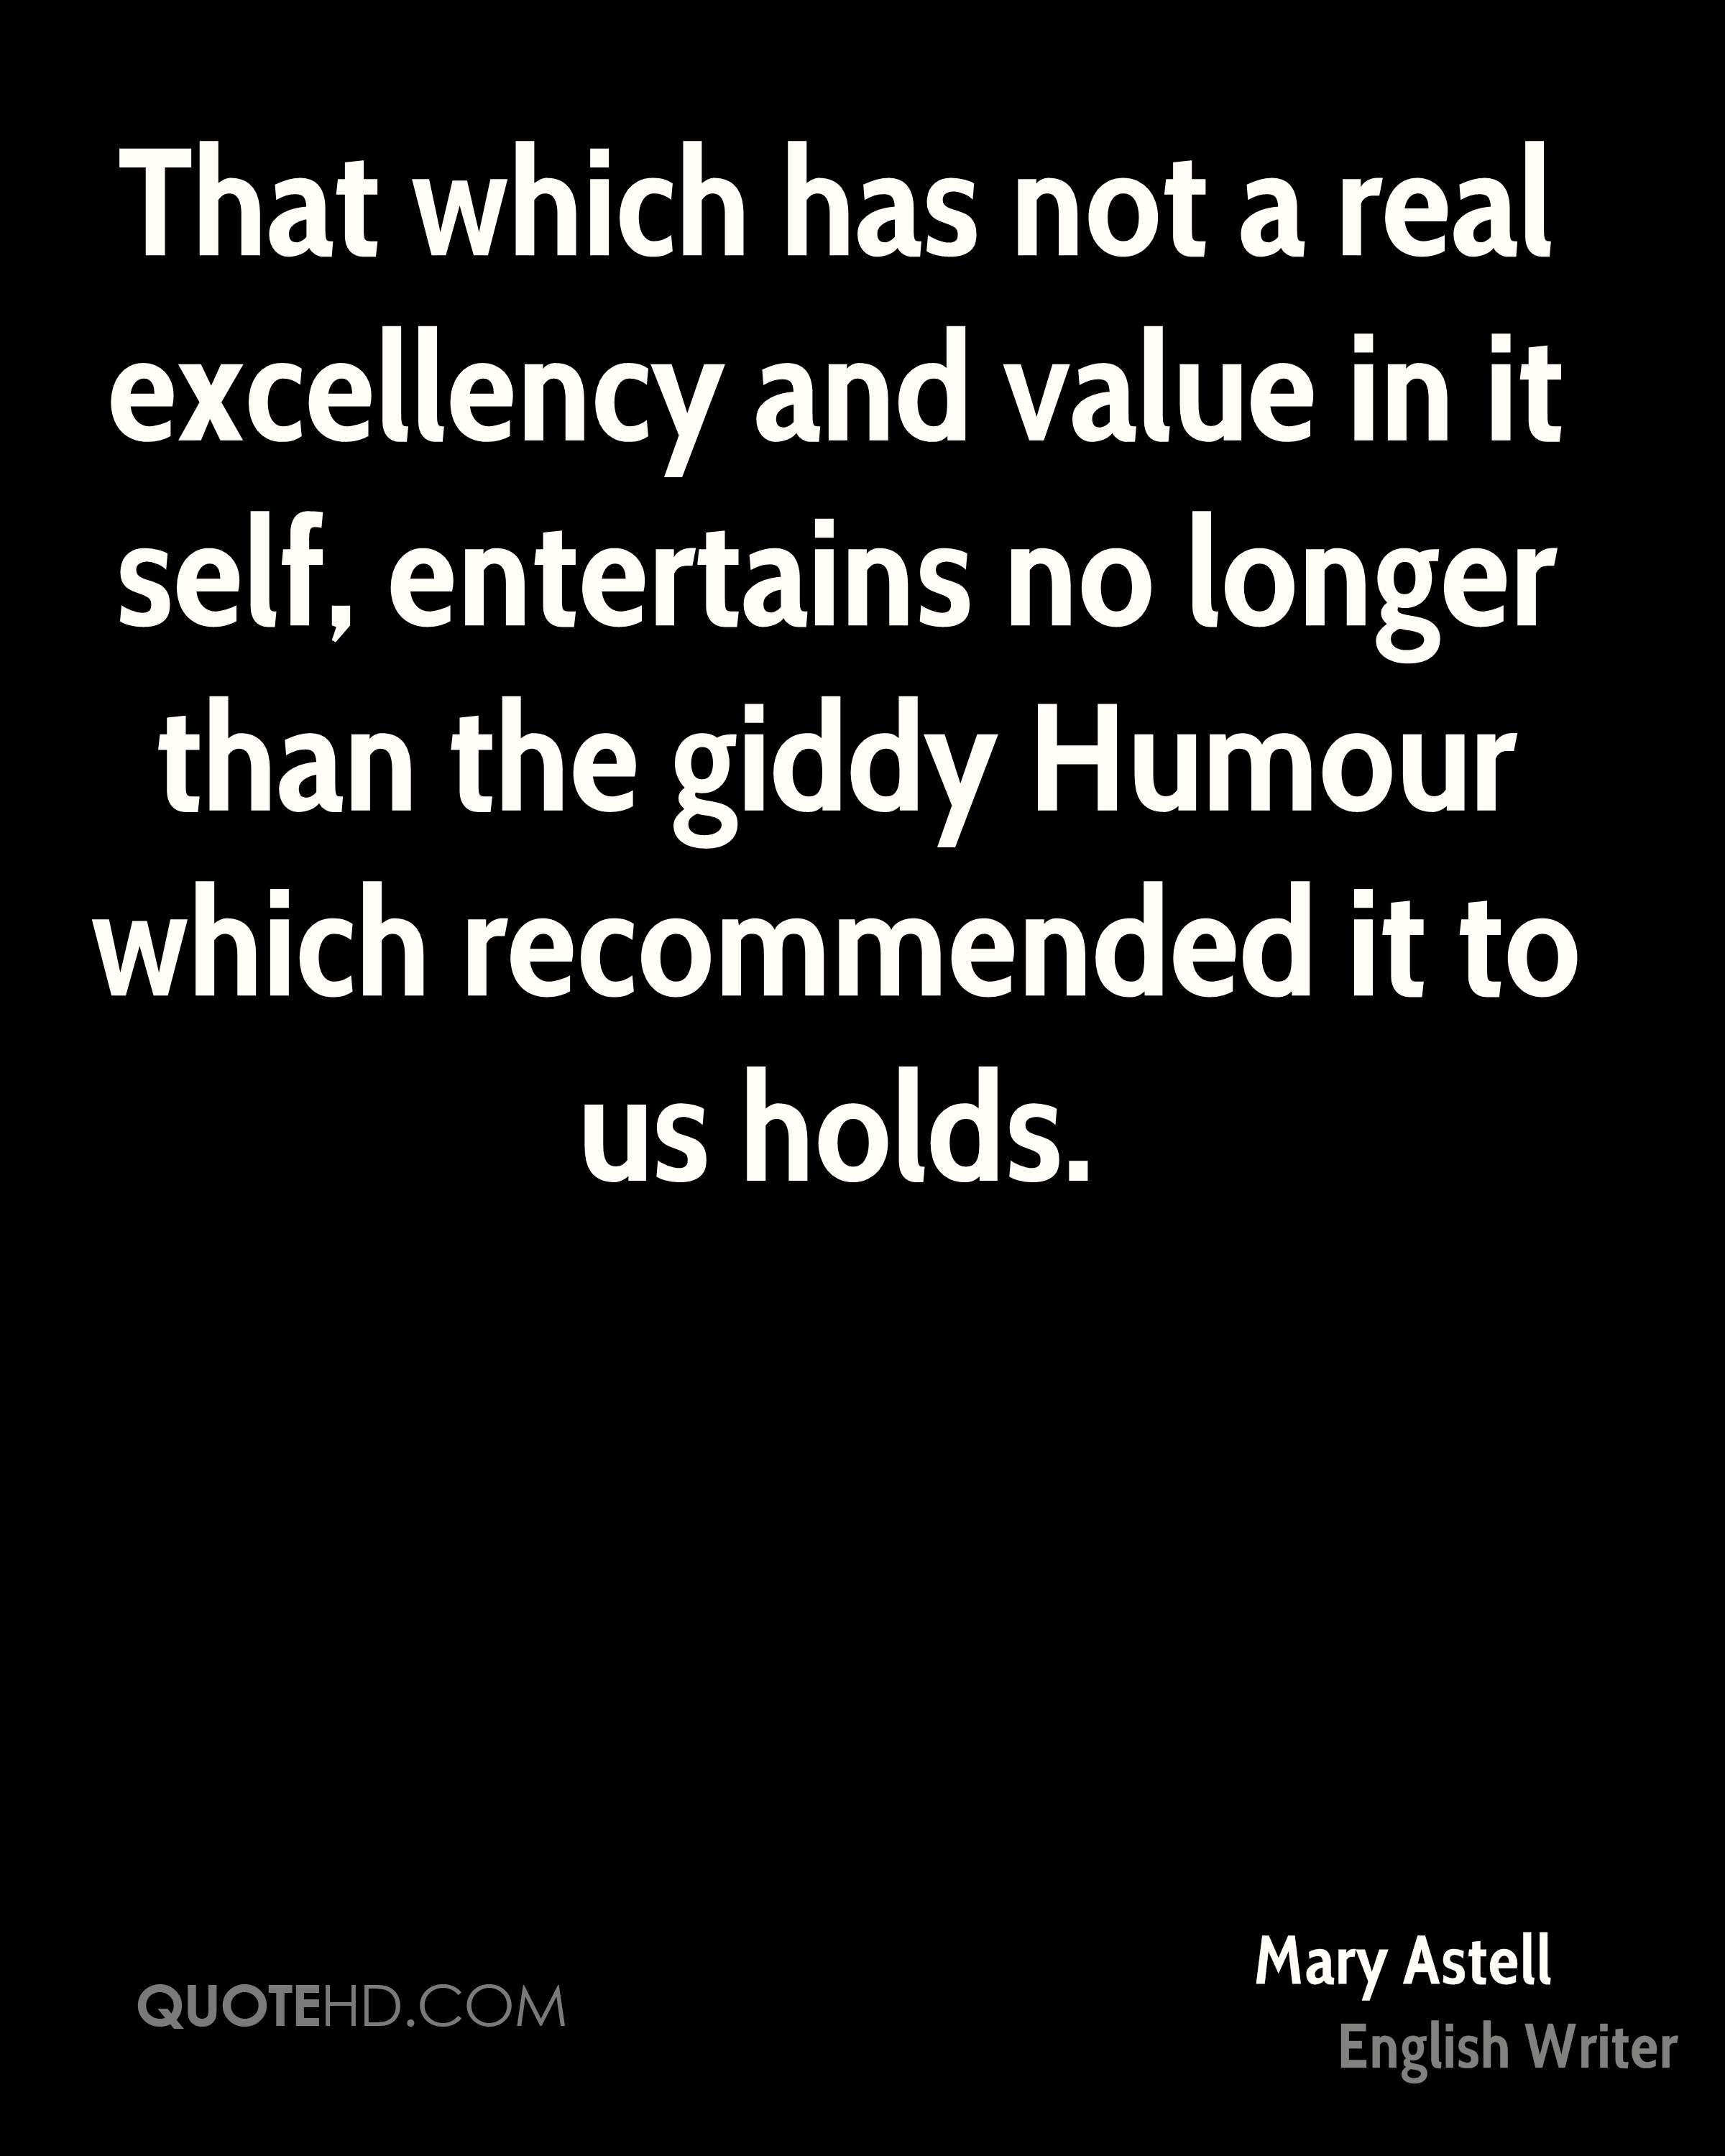 That which has not a real excellency and value in it self, entertains no longer than the giddy Humour which recommended it to us holds.